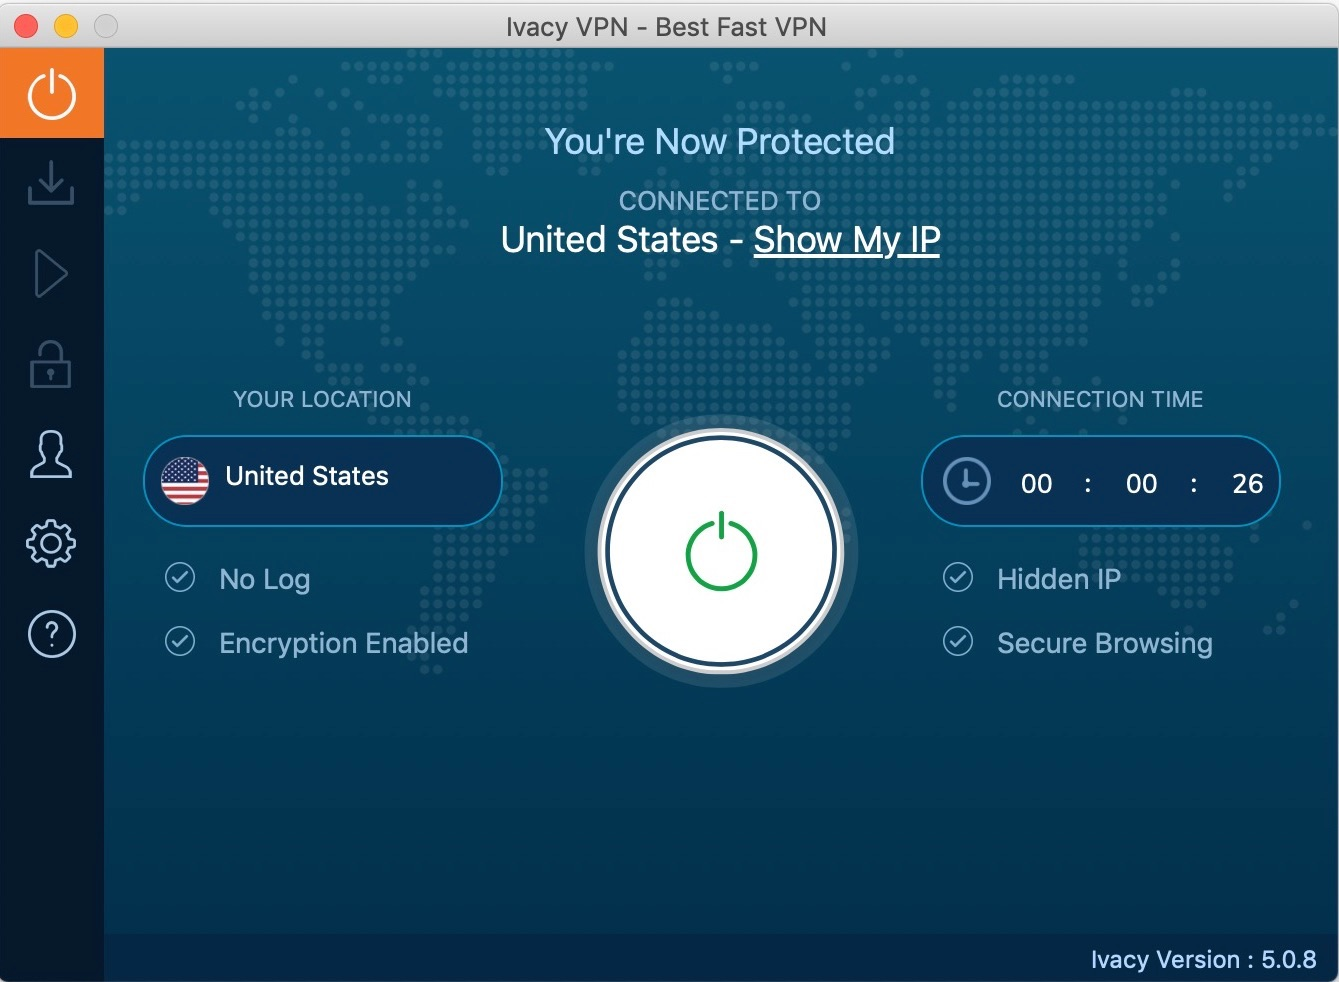 vpn_review_macOS_ivacy_app_connected